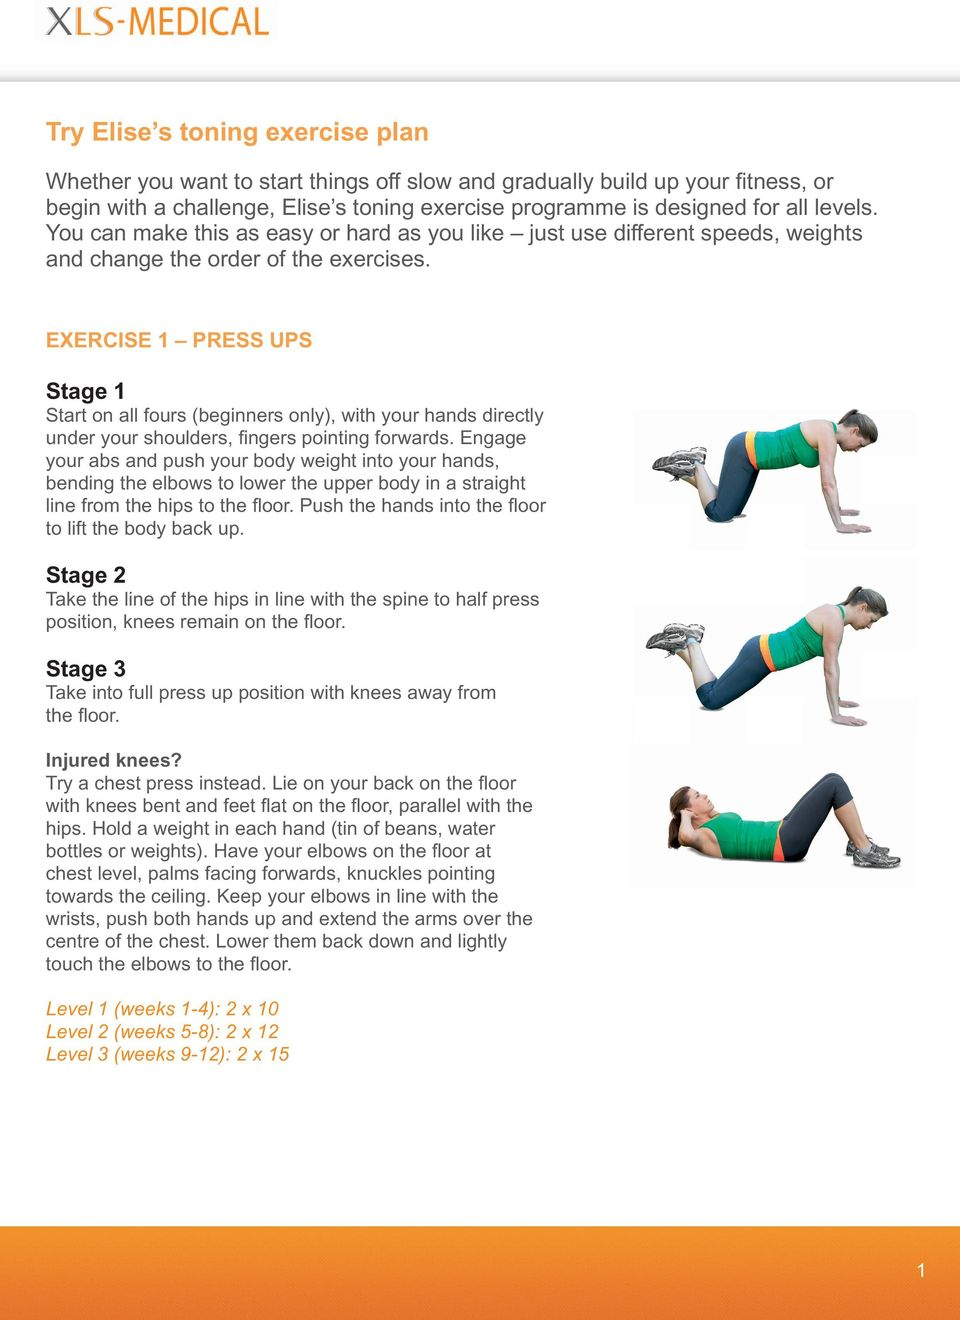 ExErcisE 1 press ups stage 1 Start on all fours (beginners only), with your hands directly under your shoulders, fi ngers pointing forwards.